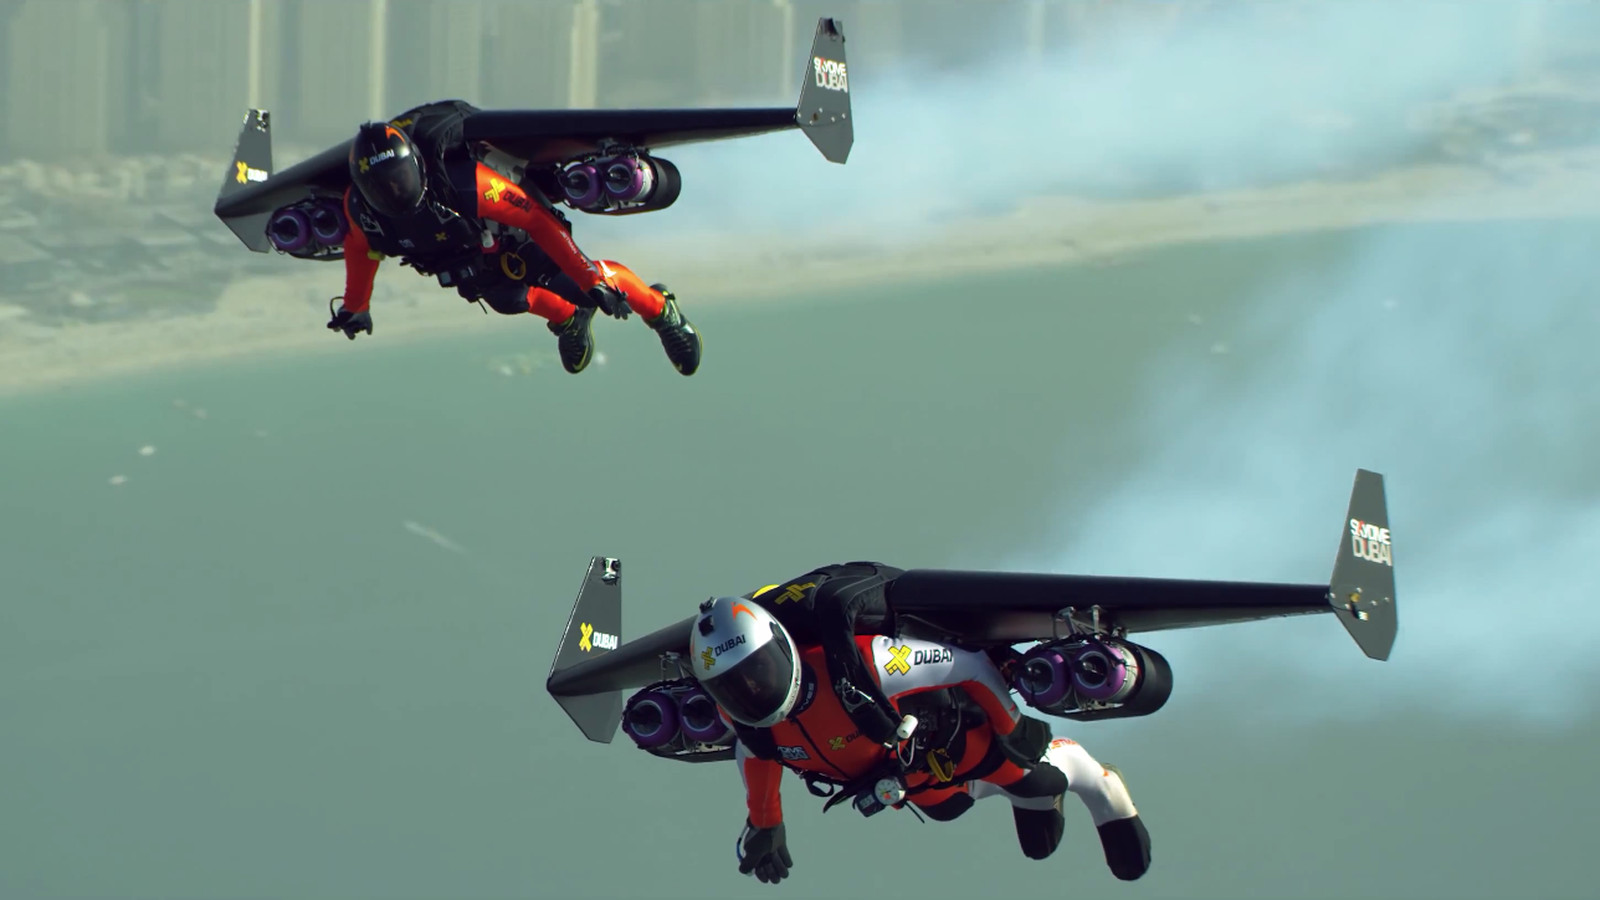 Watch Two Crazy People Fly Jetpacks Over Dubai In K The Verge - Crazy video of two guys flying jetpacks over dubai